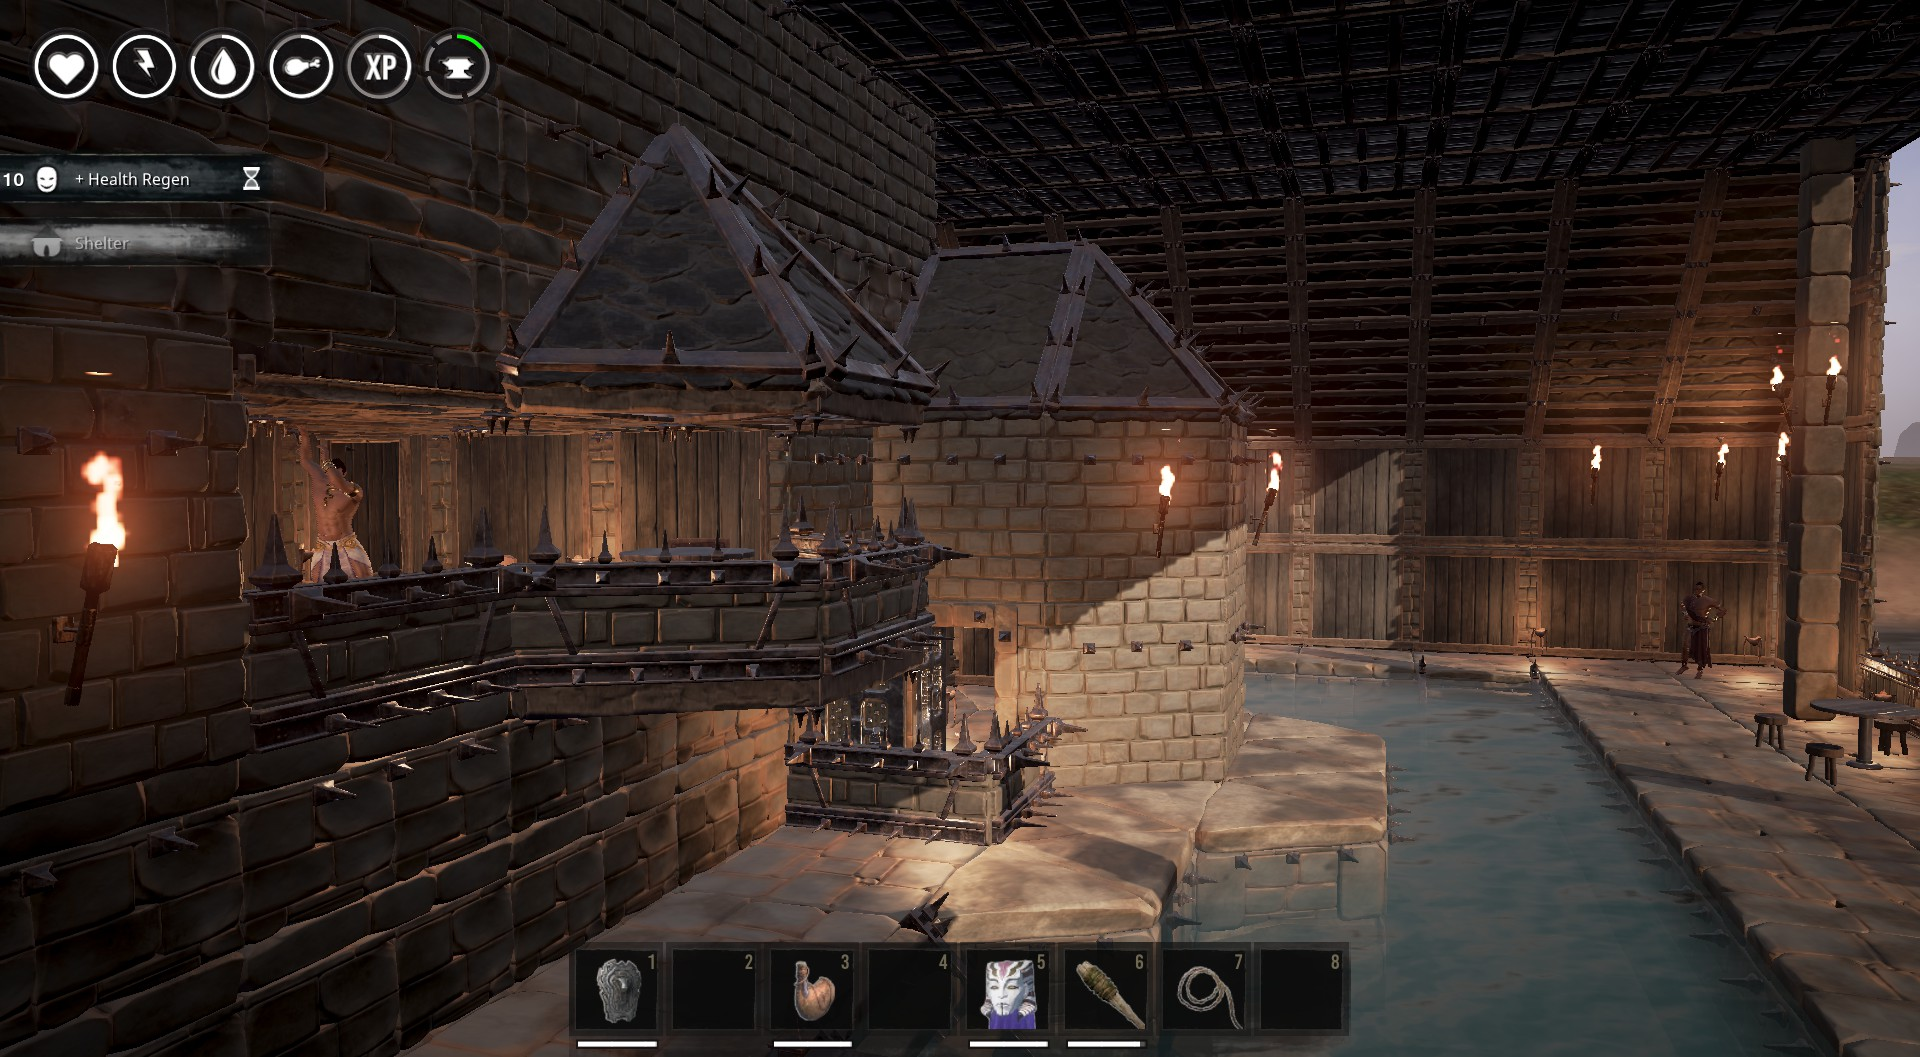 Comunidad Steam Guia Buildings And Structural Integrity Updated Rev 3